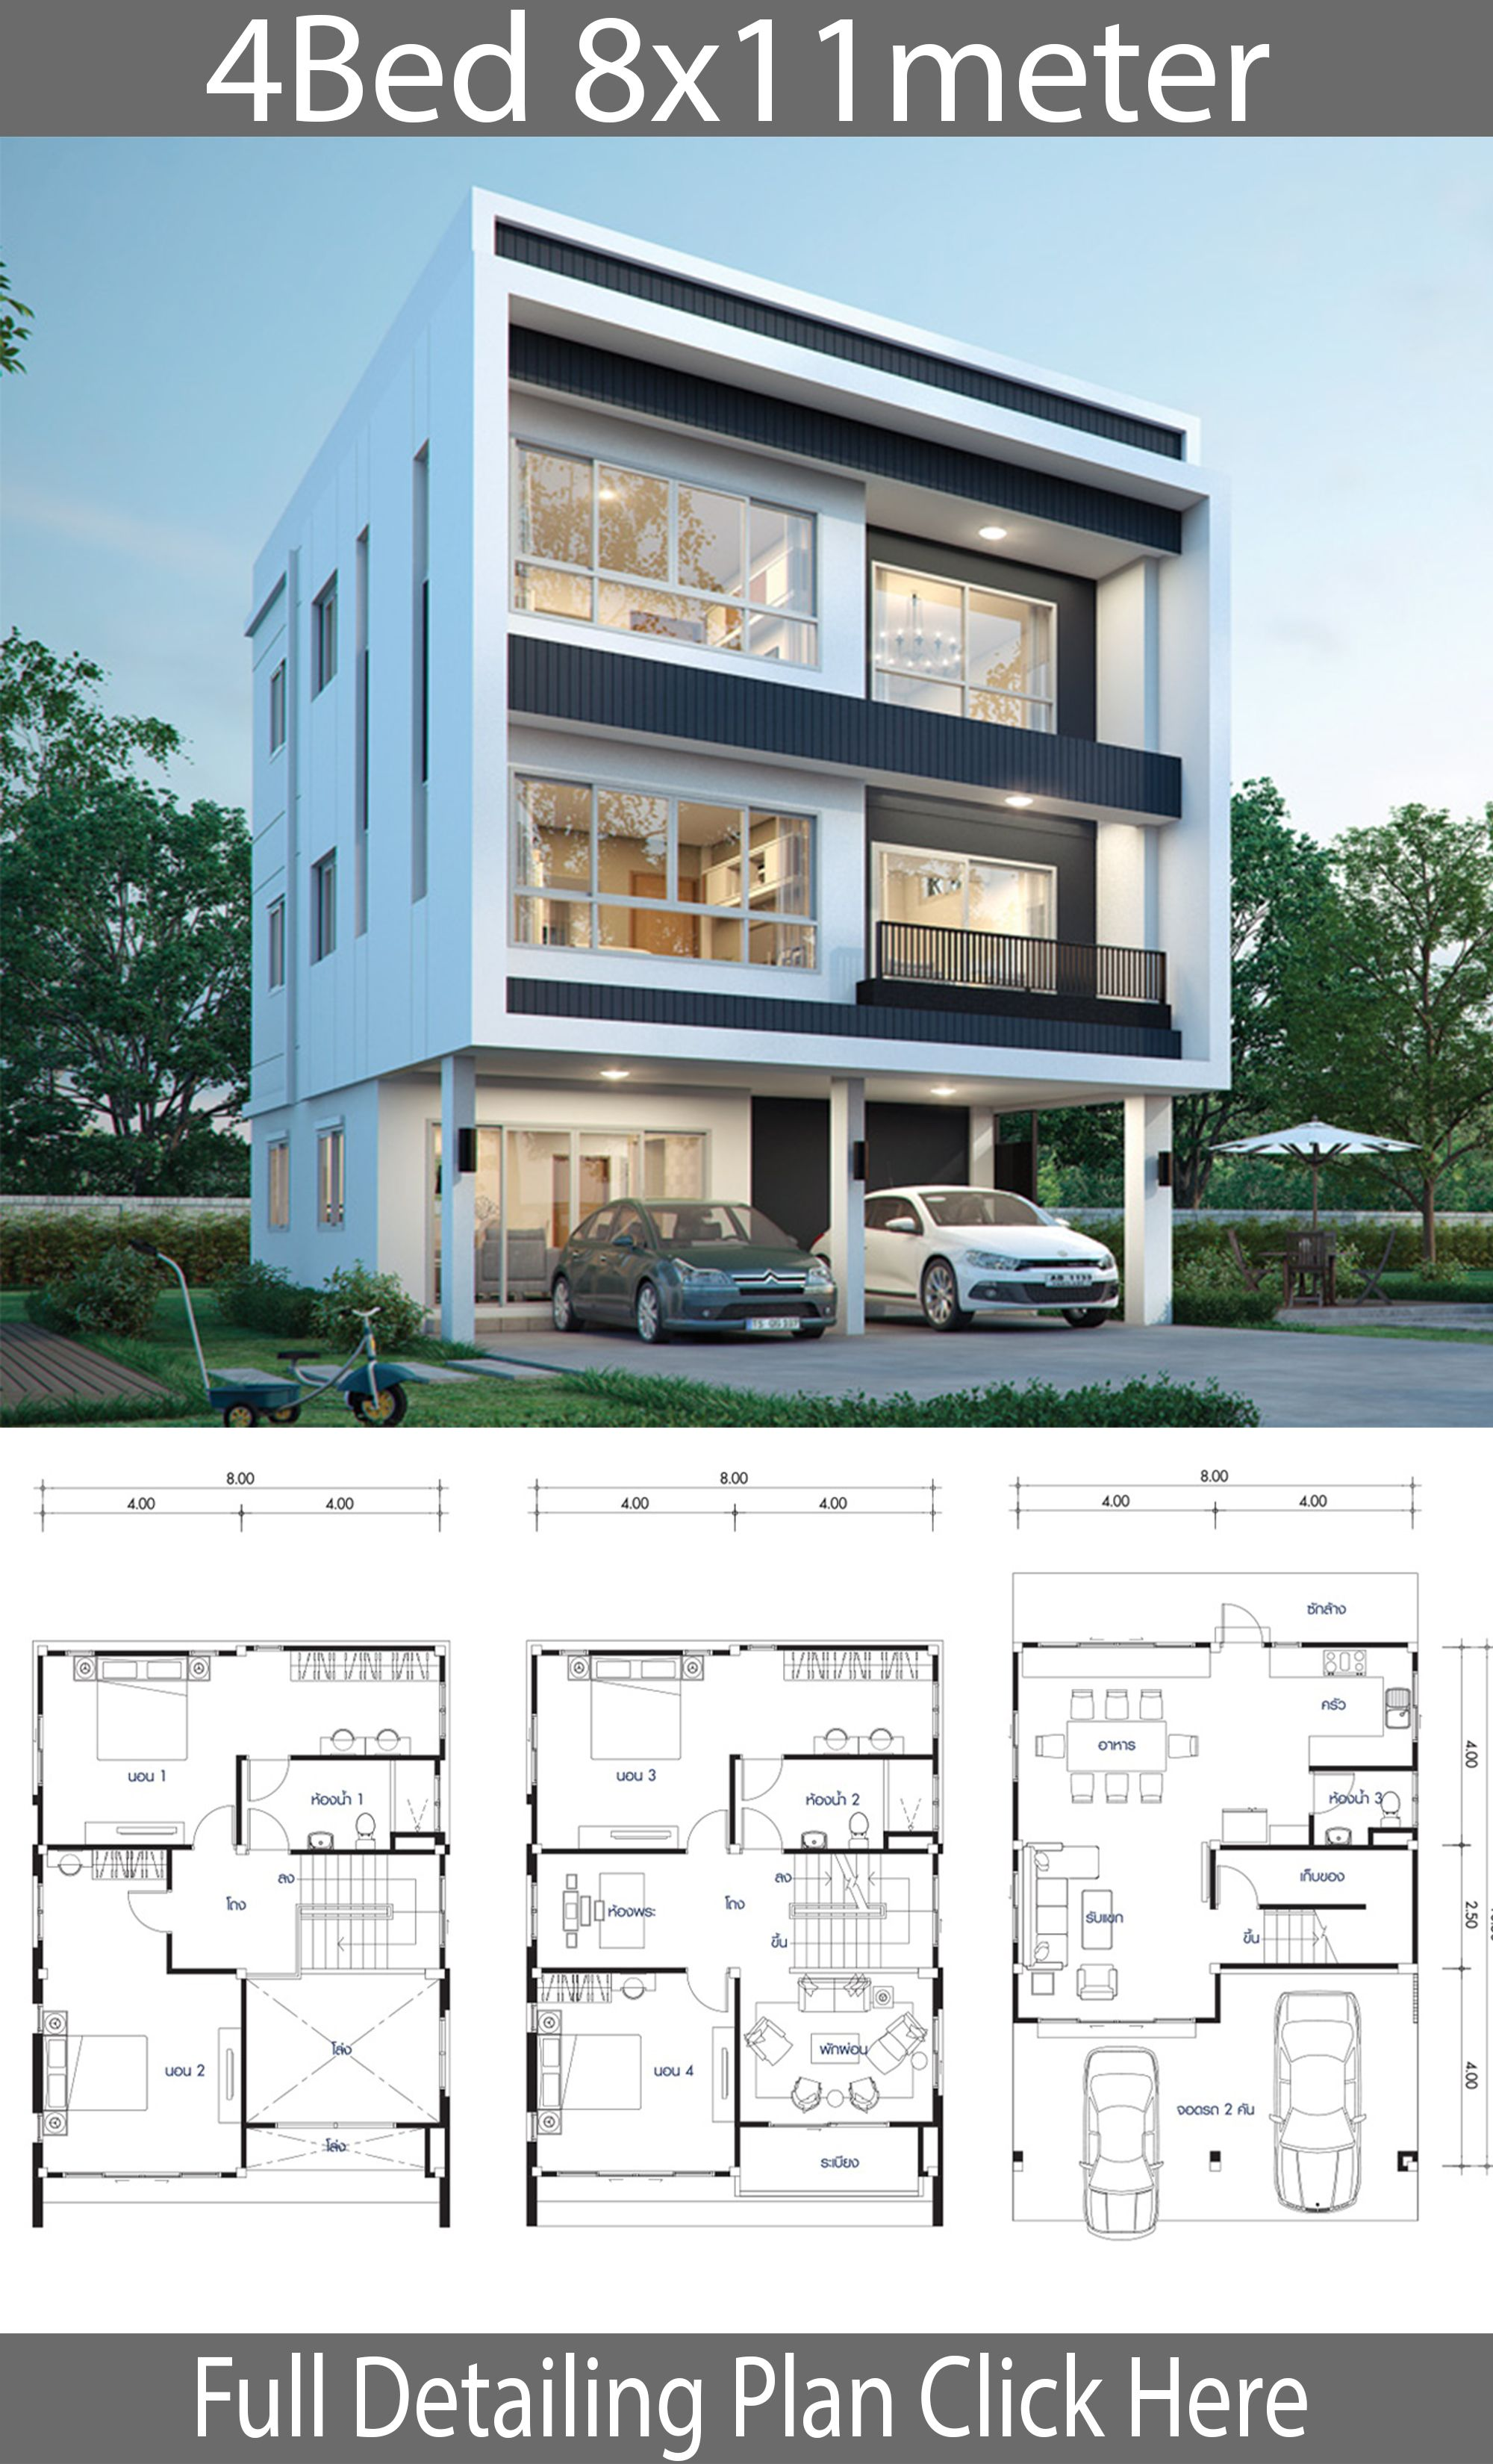 House Design Plan 8x11m With 4 Bedrooms House Idea Model House Plan Home Design Plans Duplex House Design